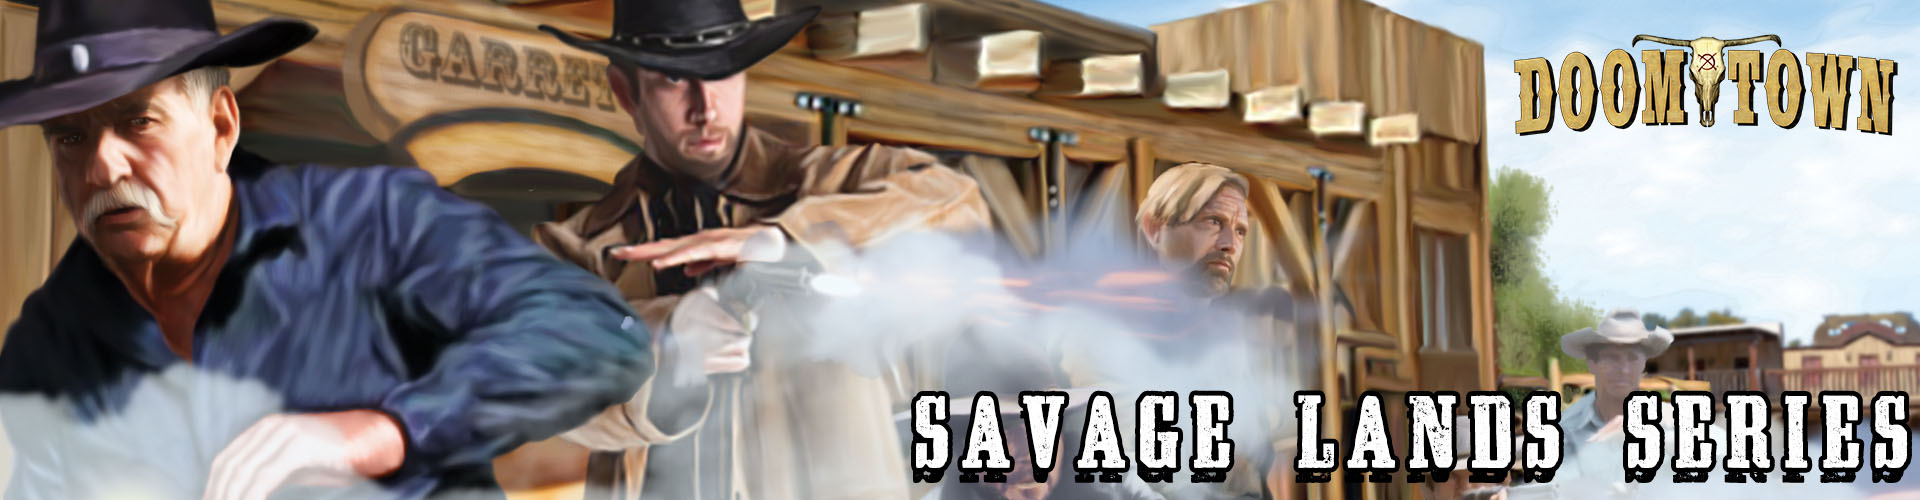 Doomtown Savage Lands Series